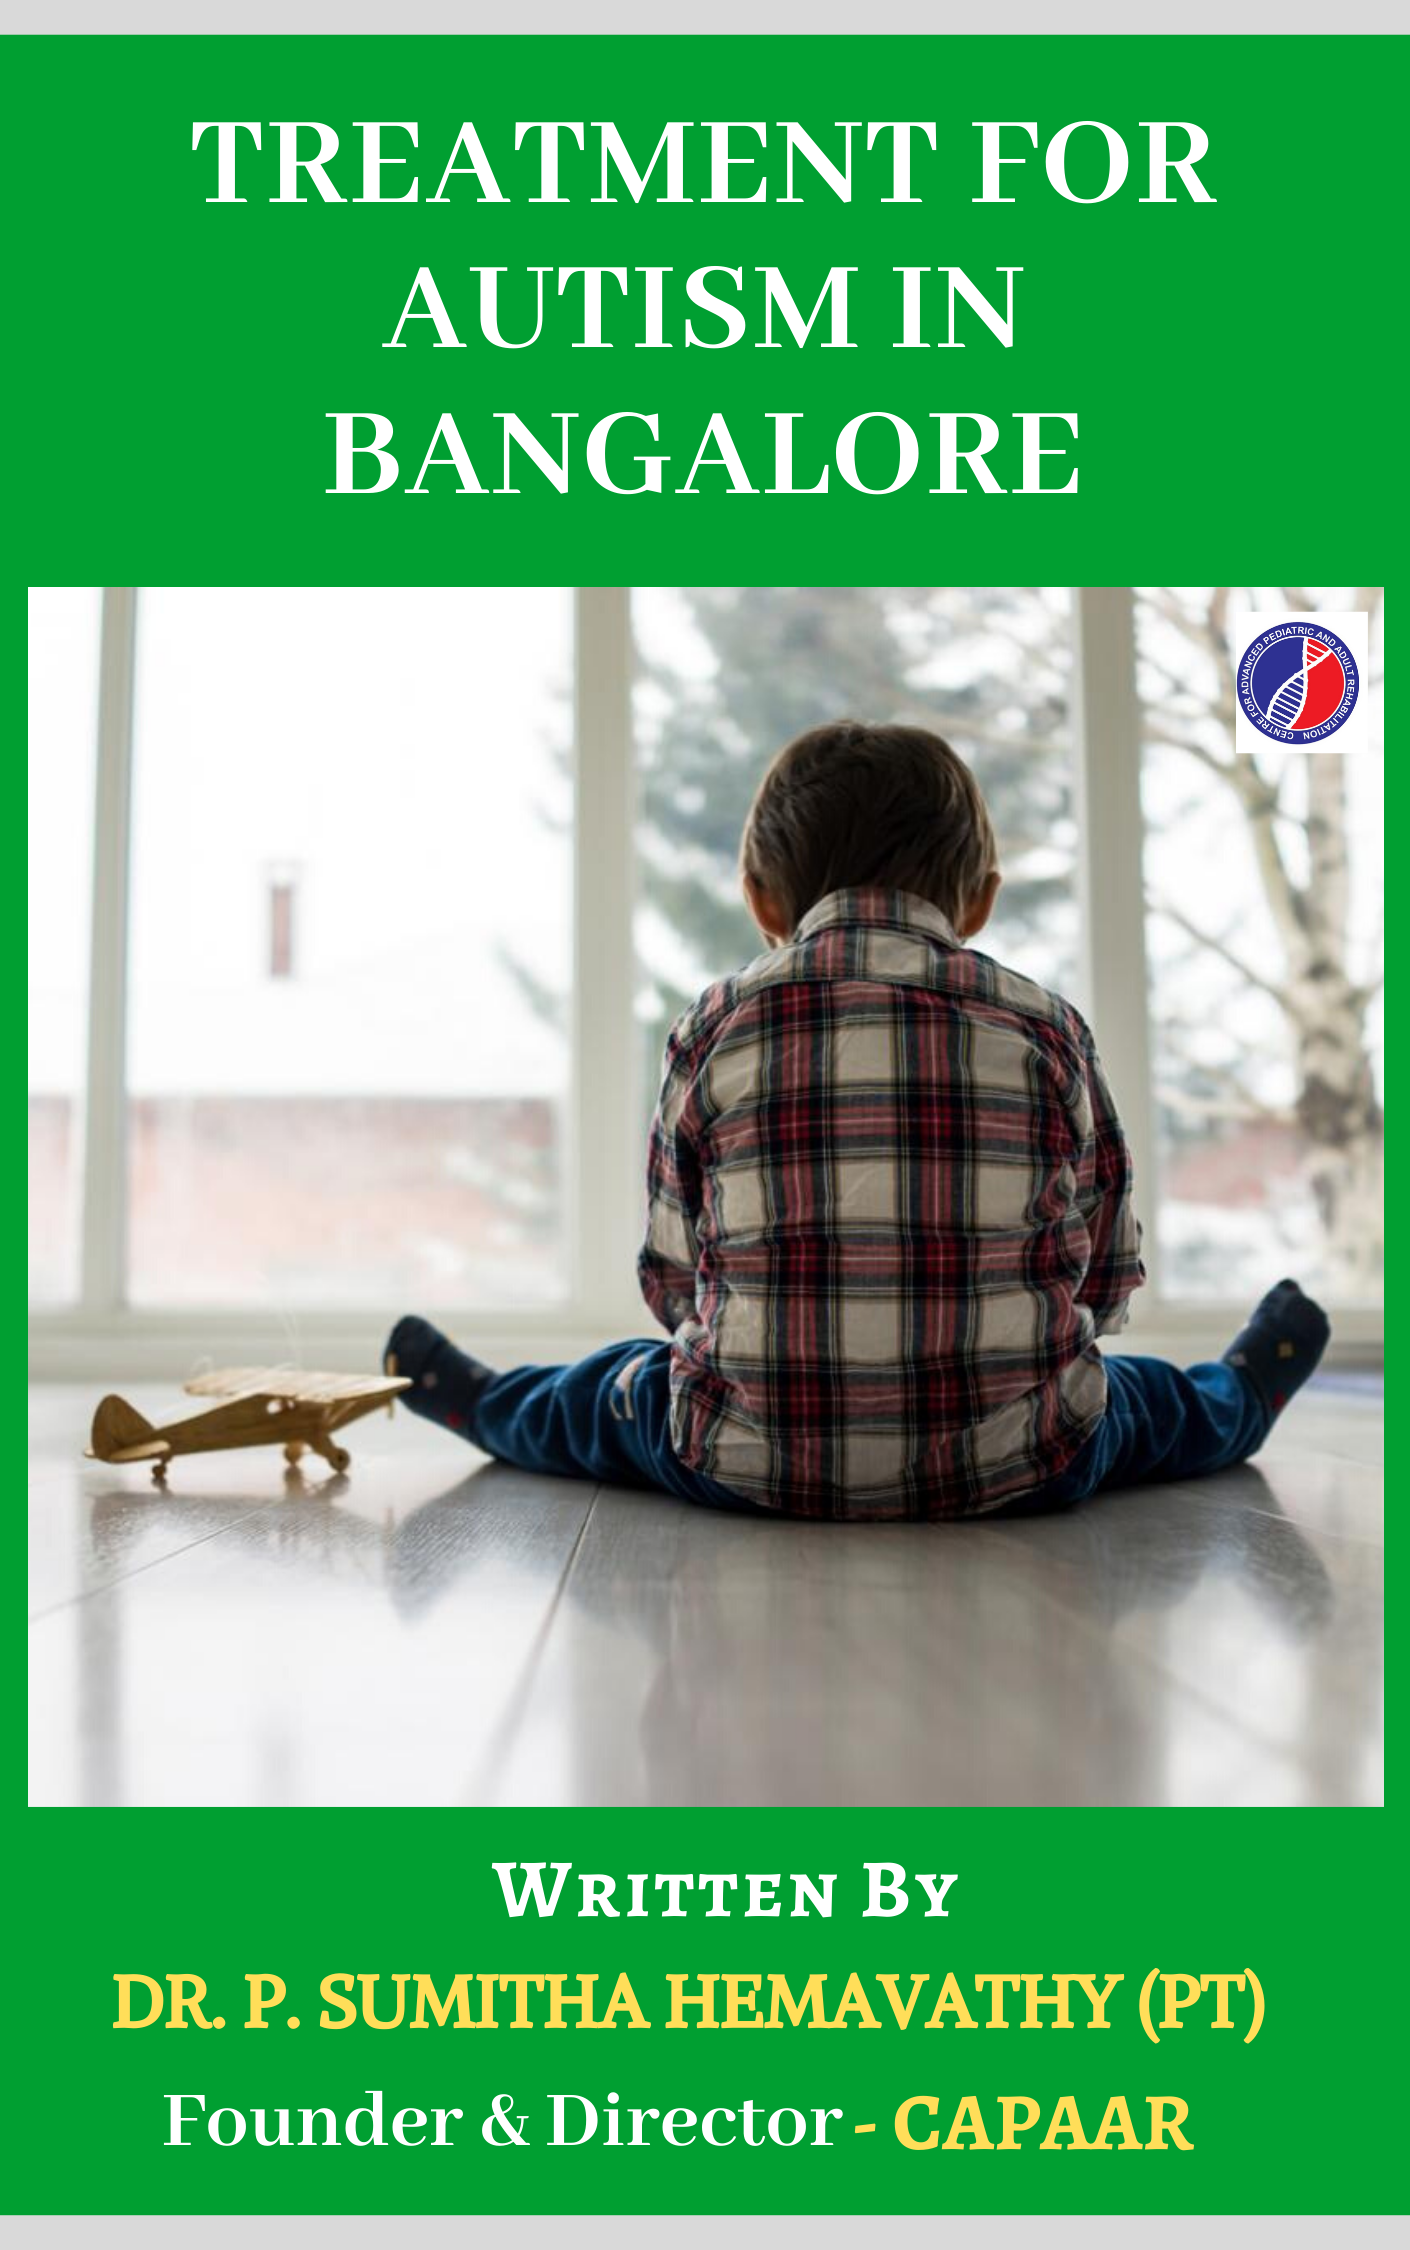 Treatment for Autism in Bangalore